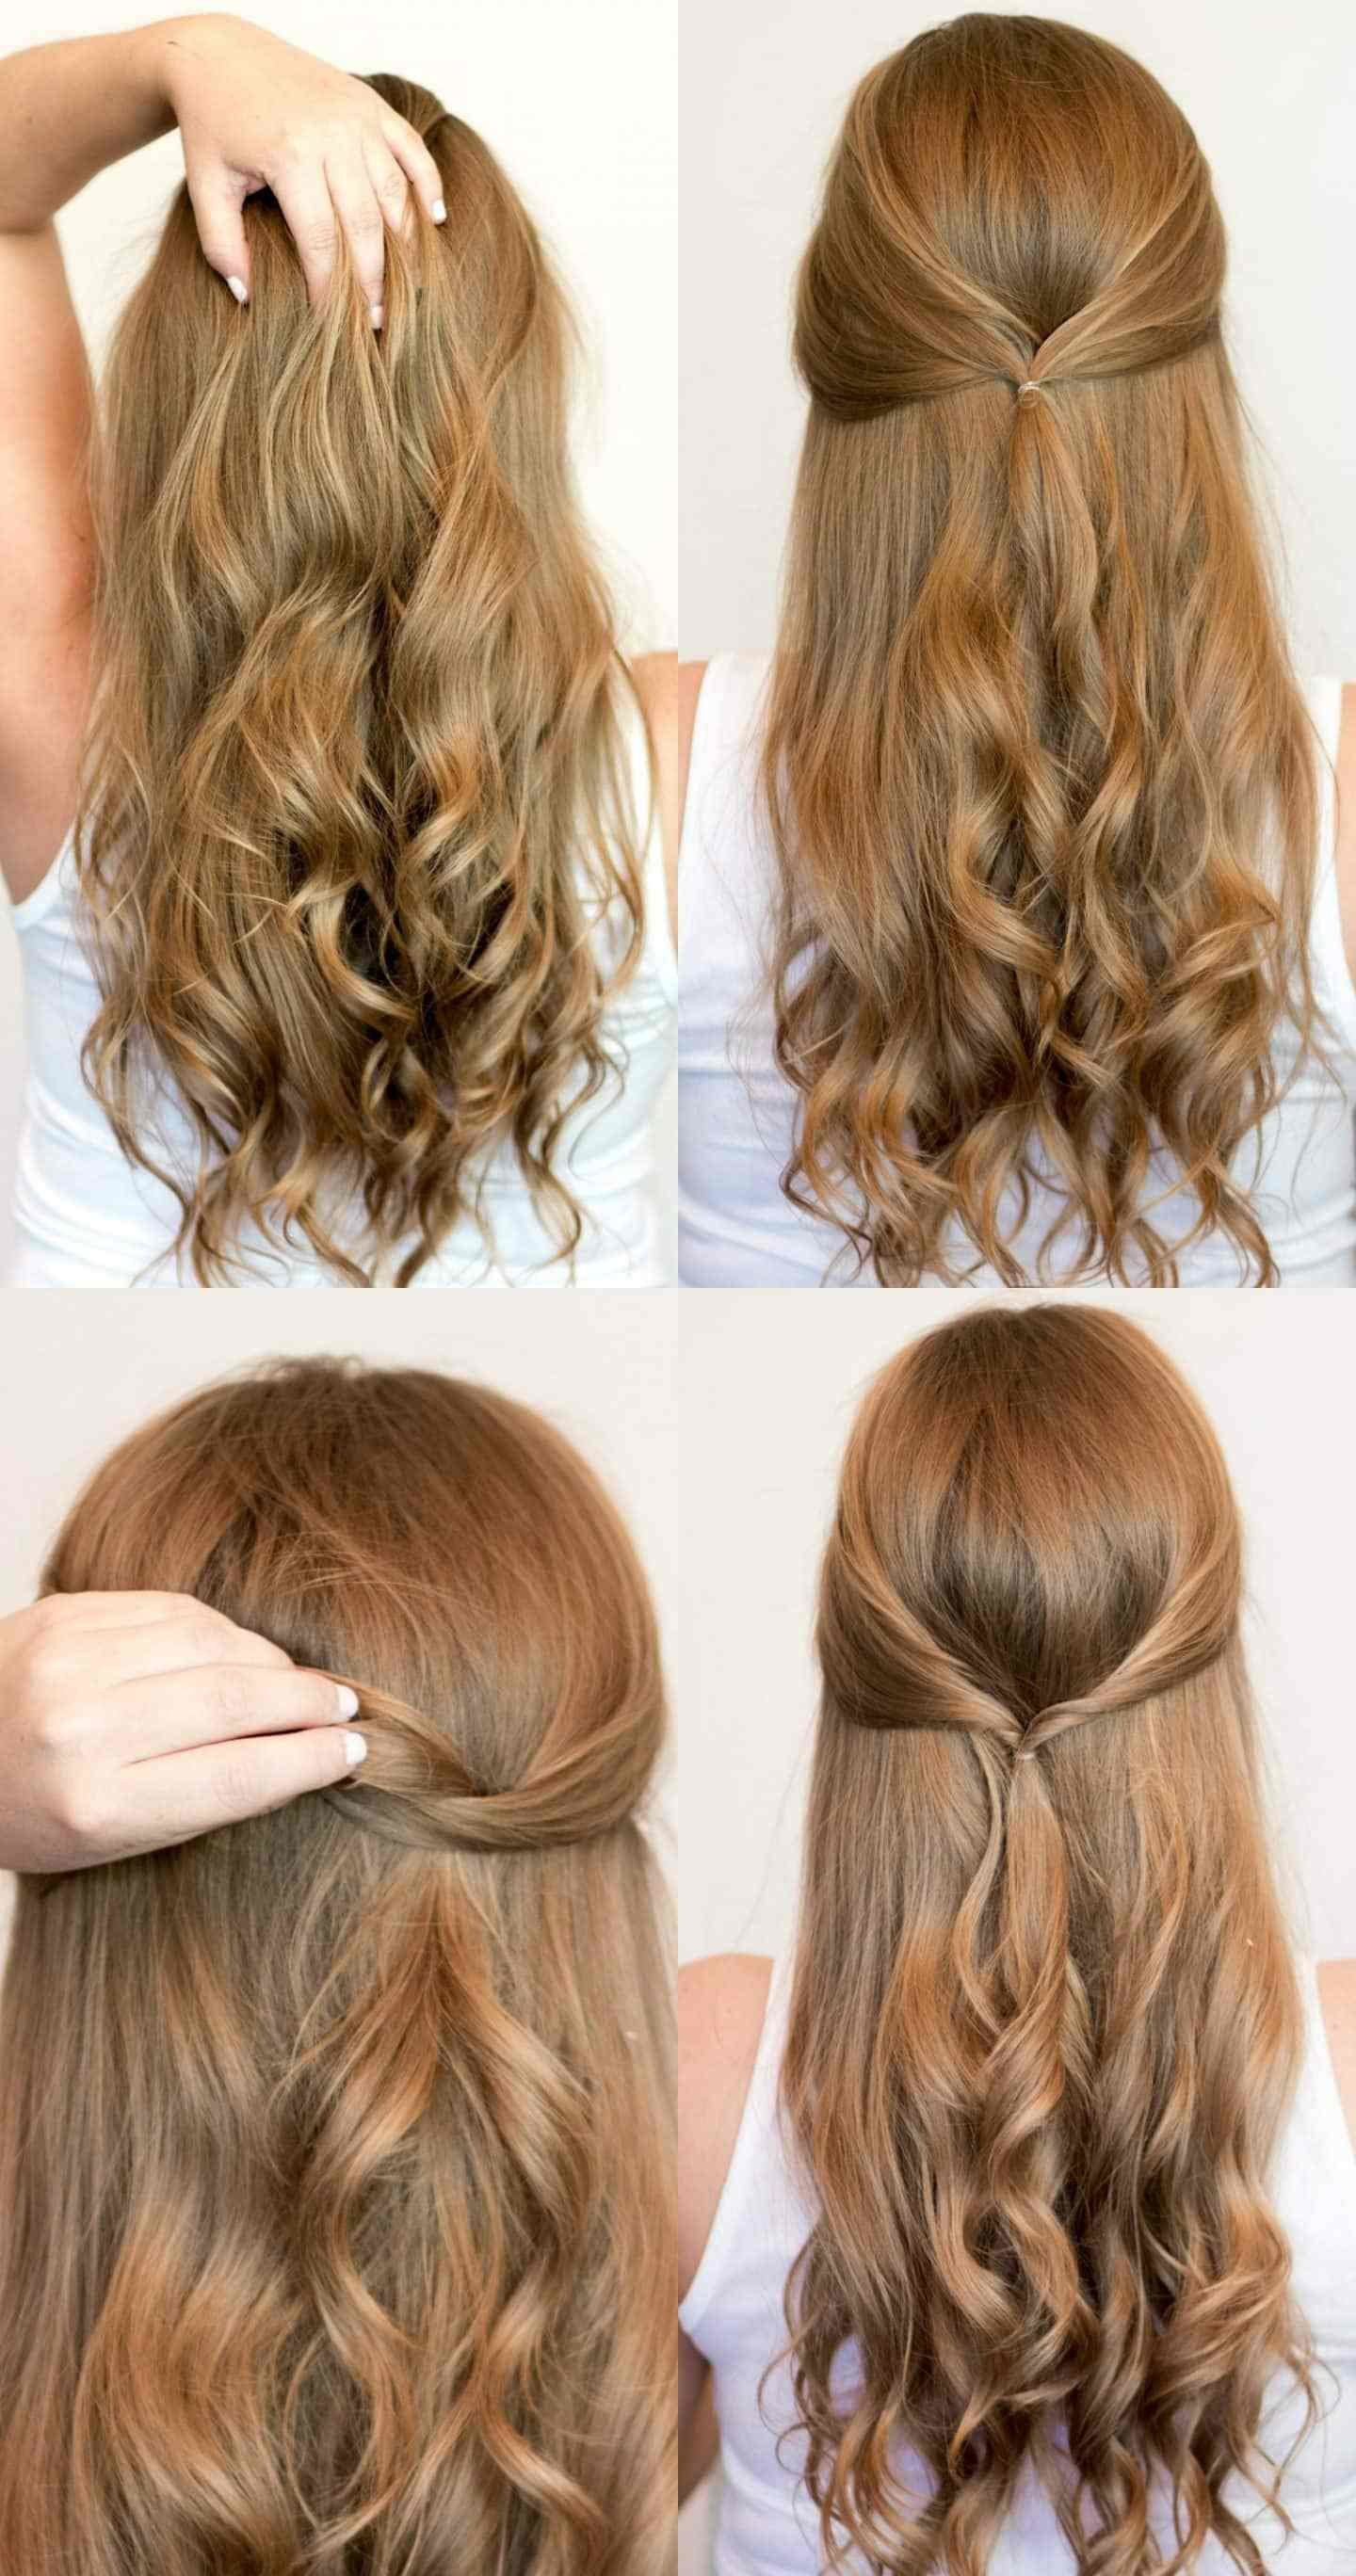 The Best Easy Heatless Hairstyles For Long Hair Ashley Brooke Pictures